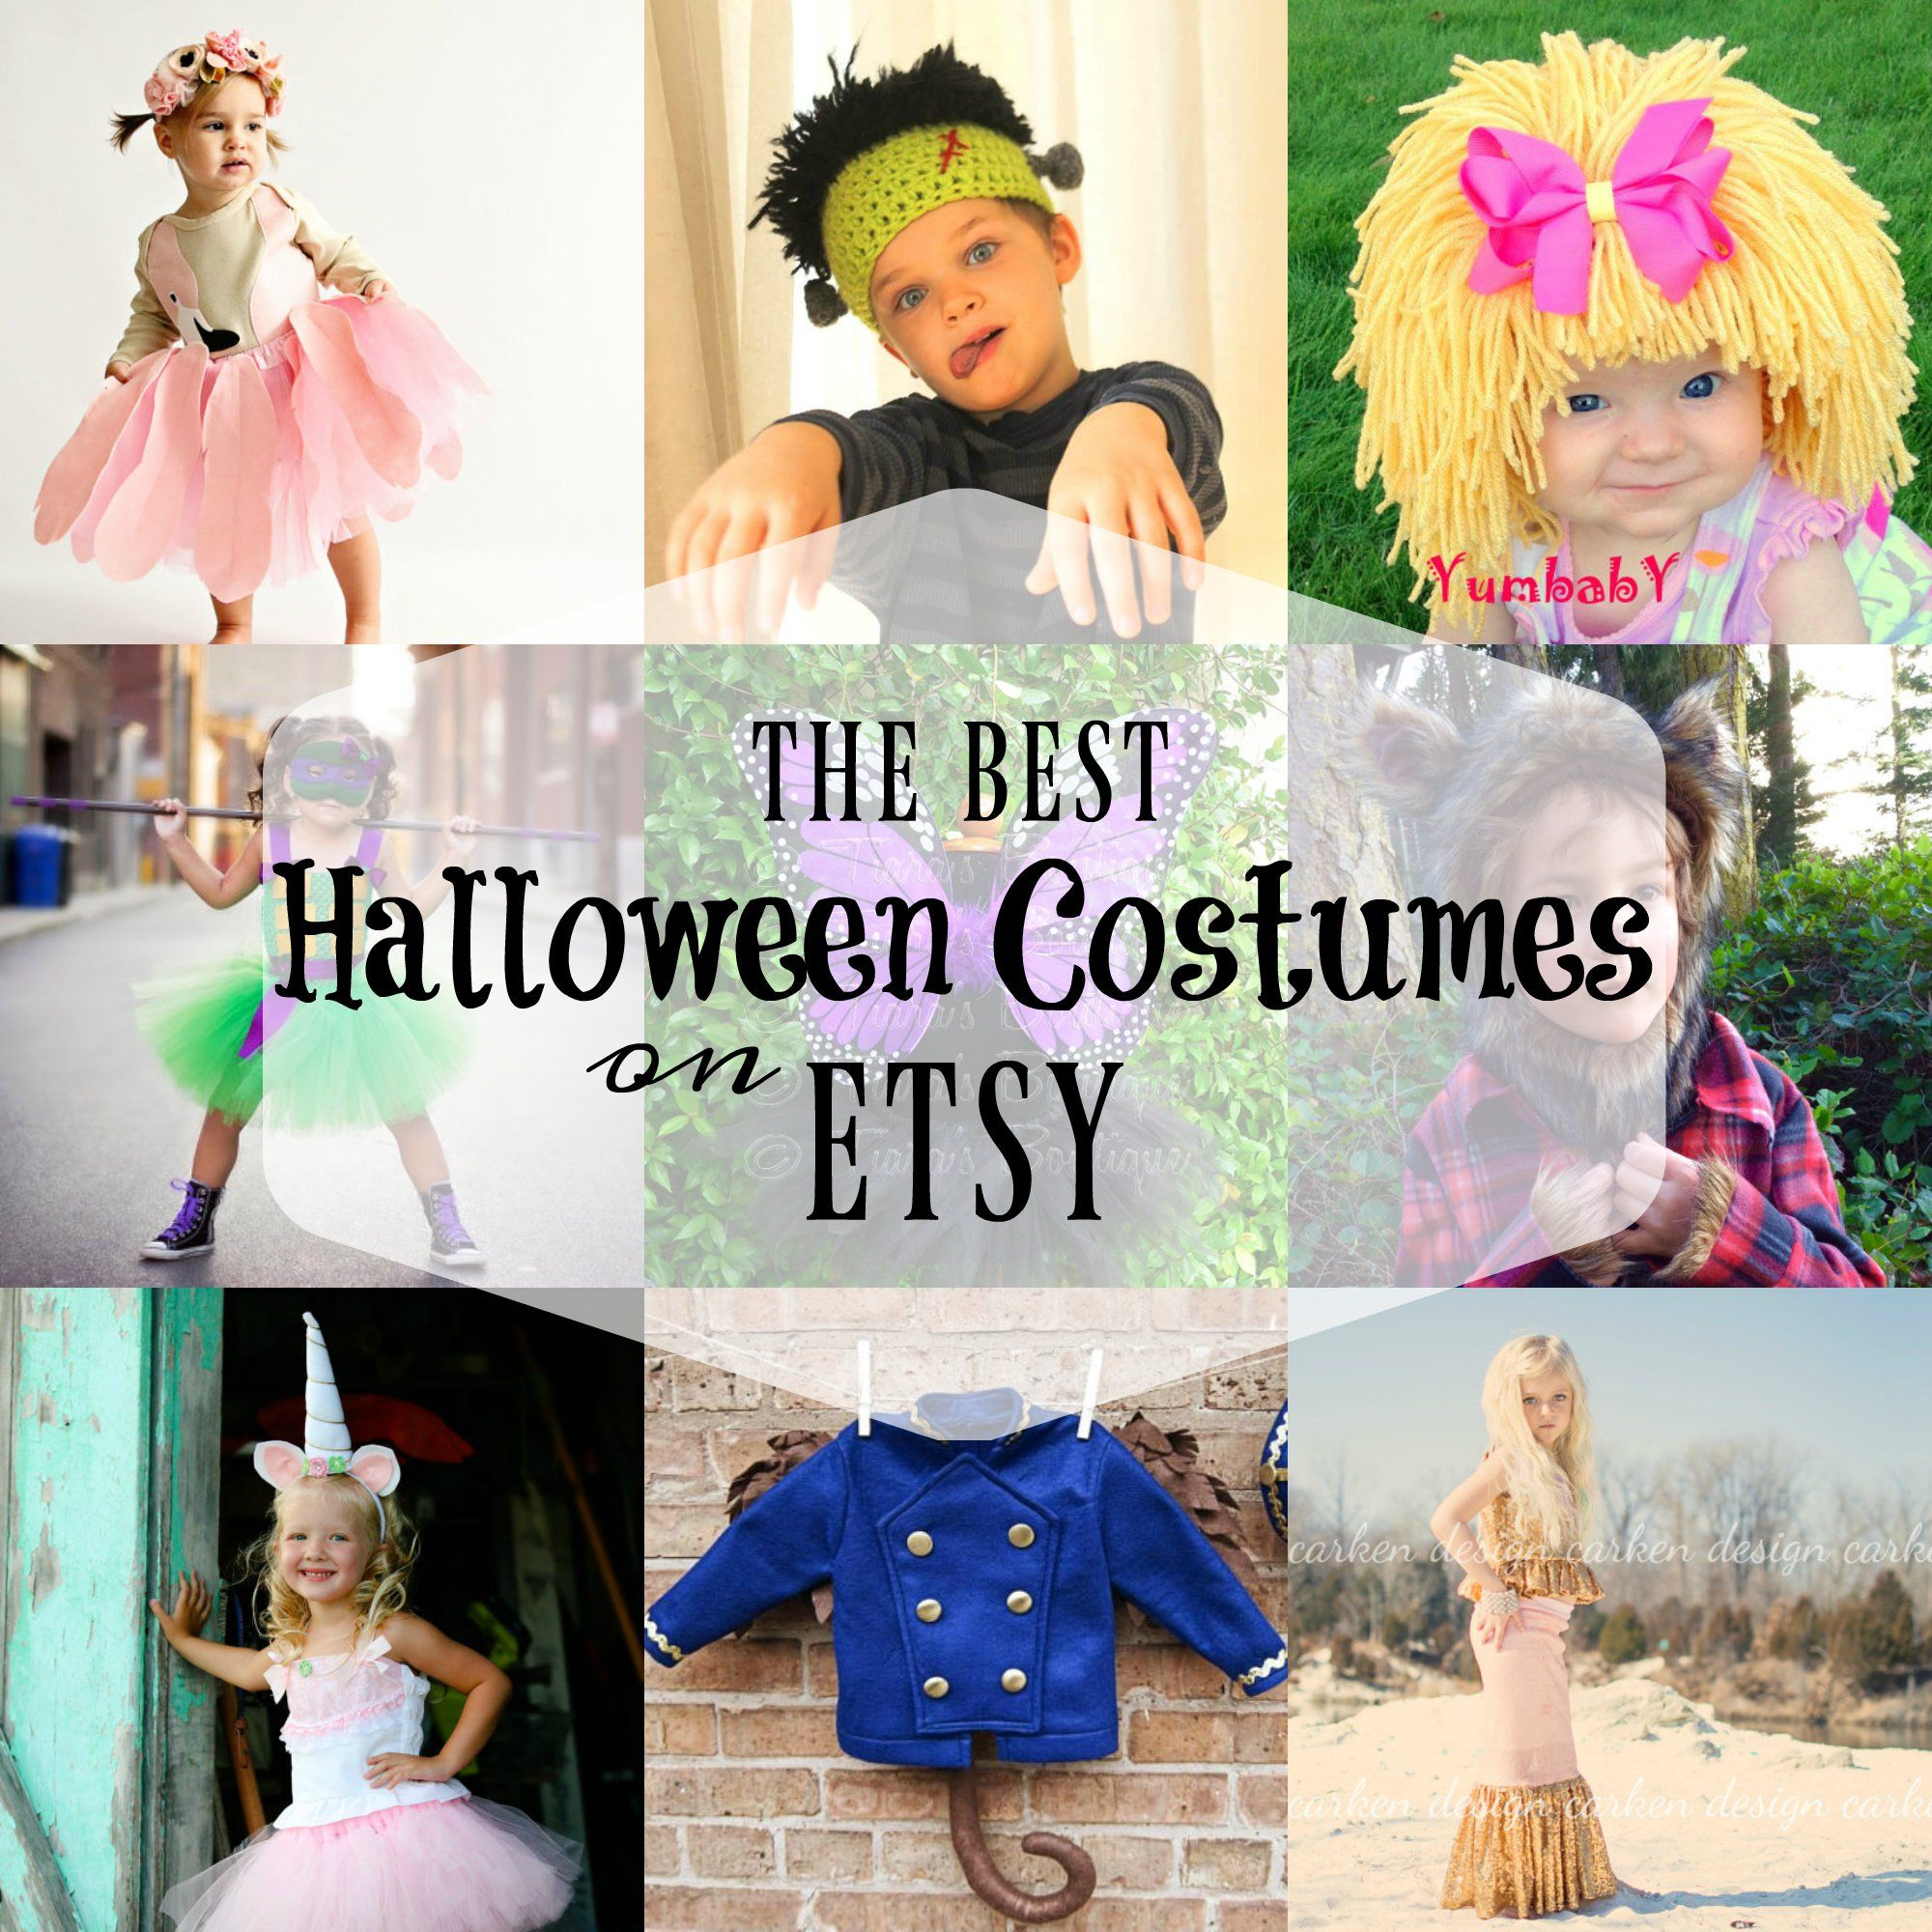 The BEST Halloween Costumes for Kids on Etsy  Halloween costumes